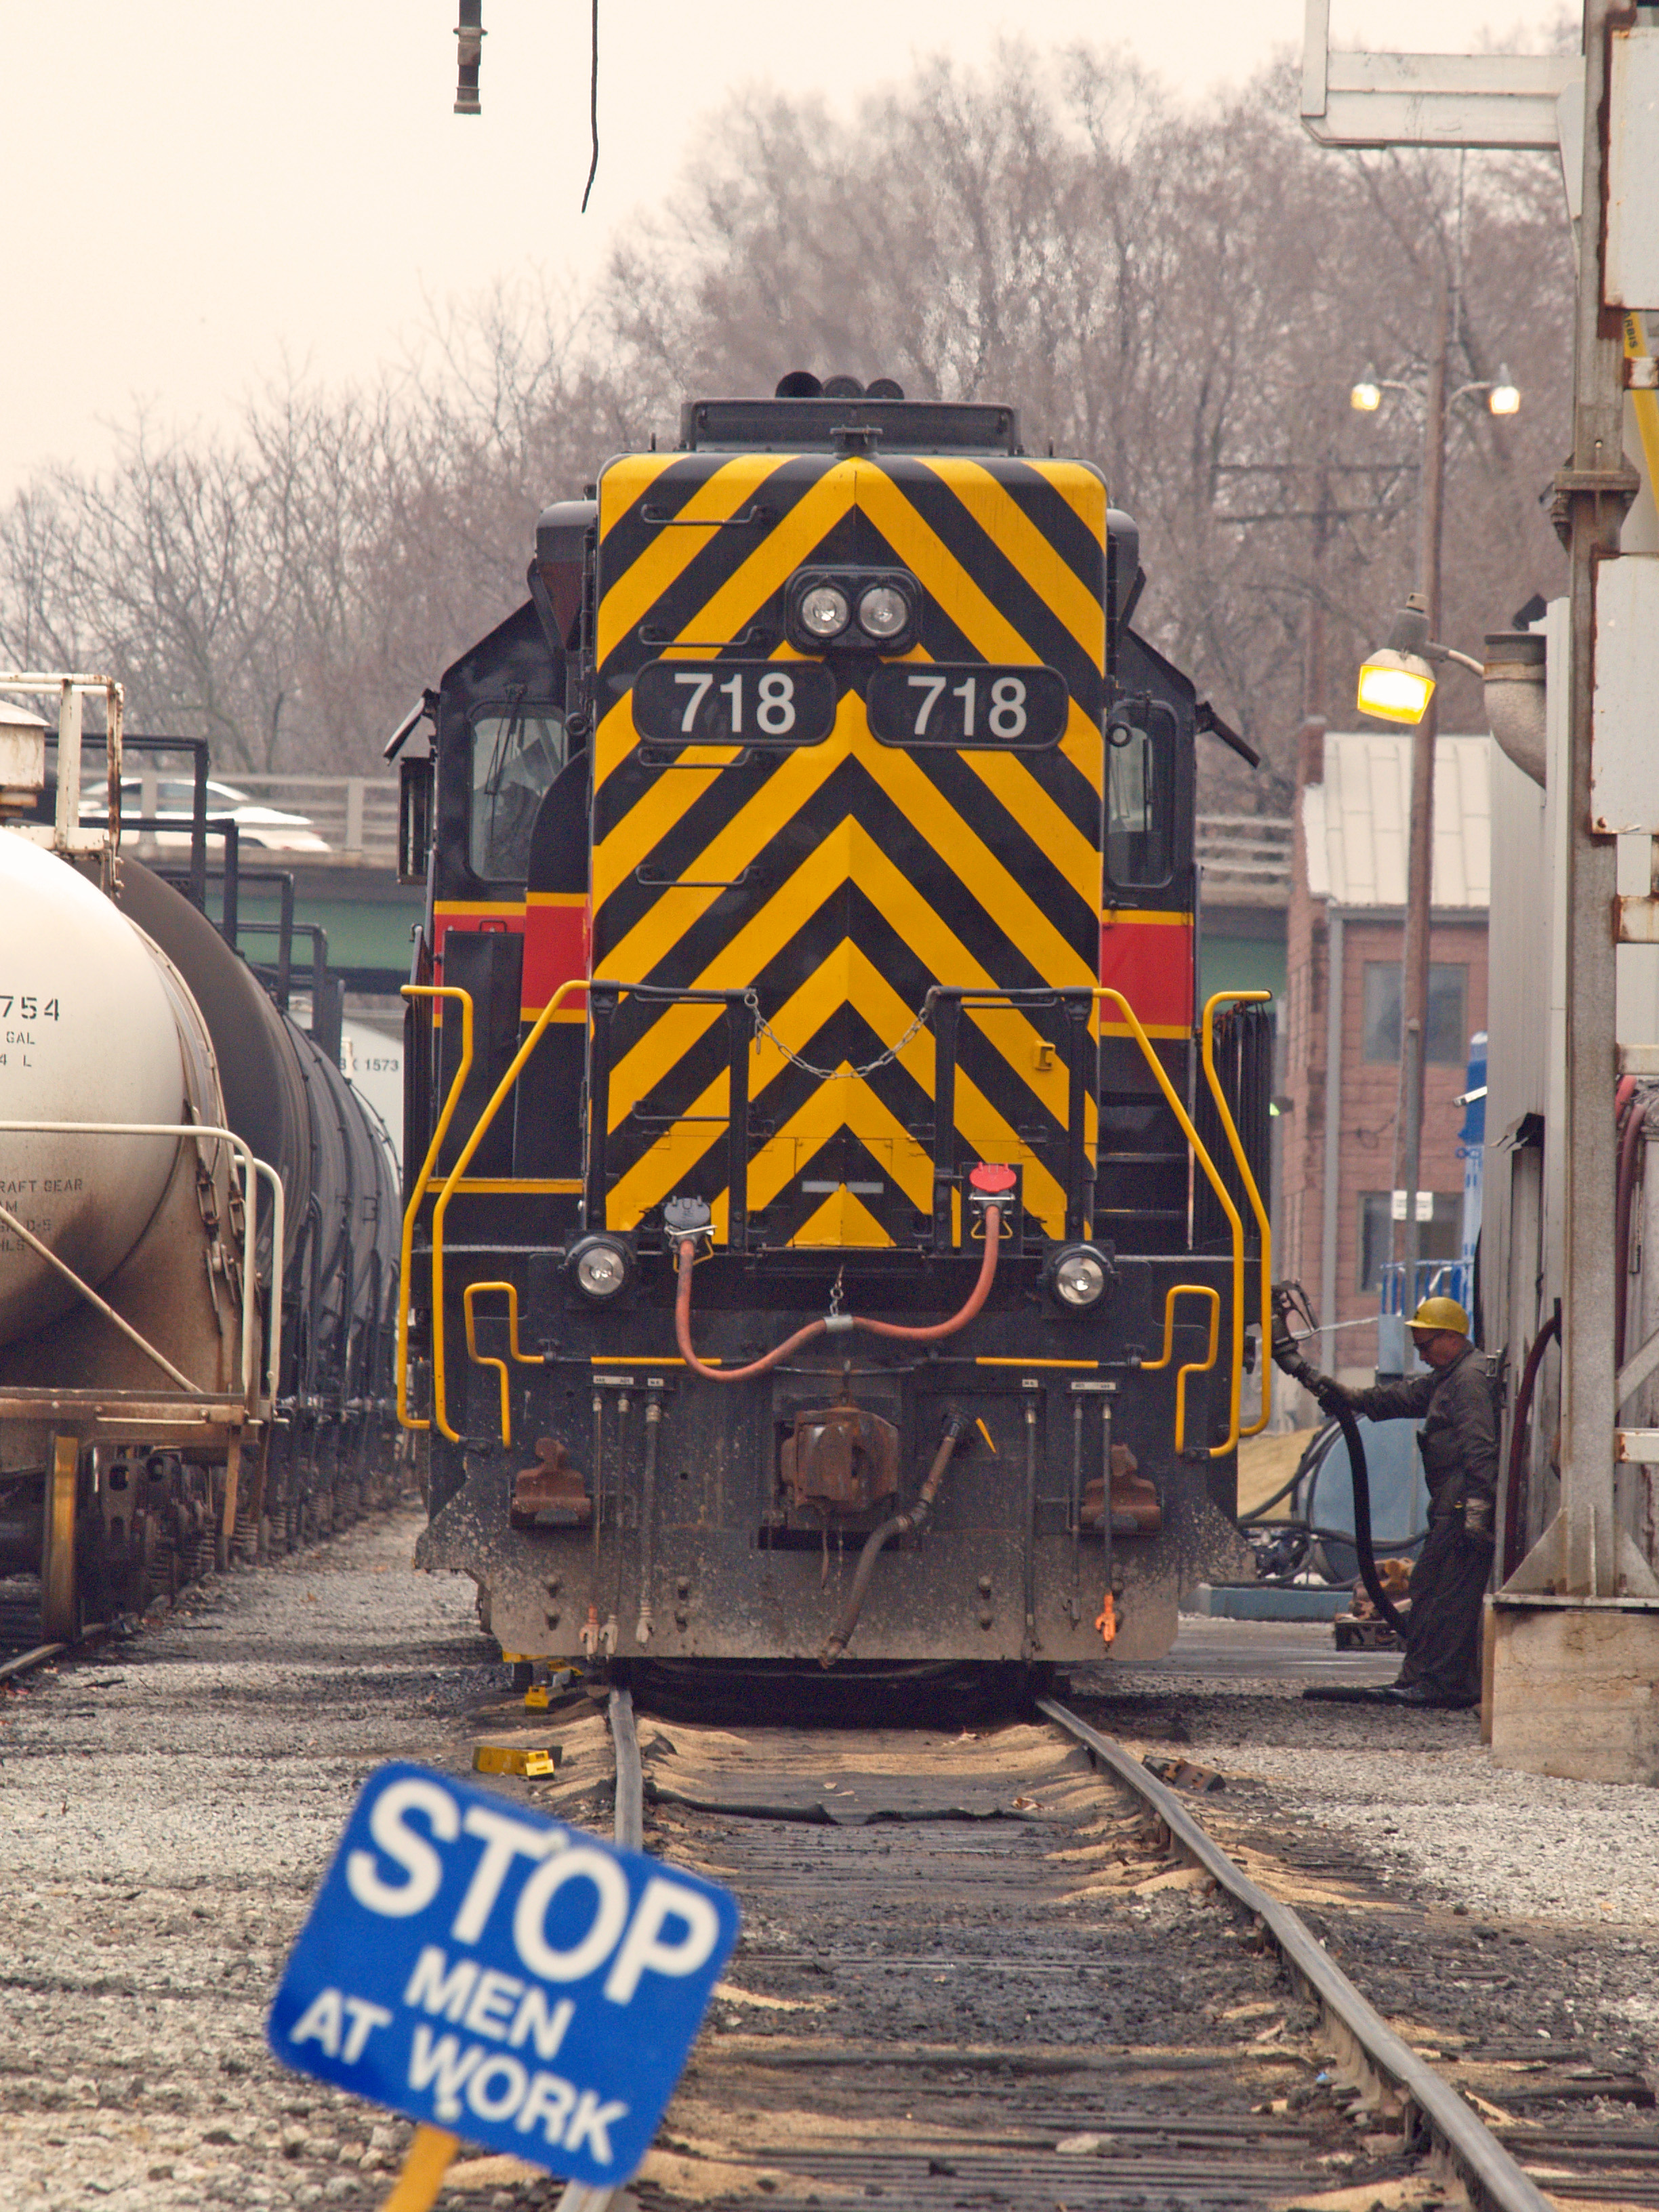 IAIS 718 Being Serviced at Iowa City, March 23, 2007